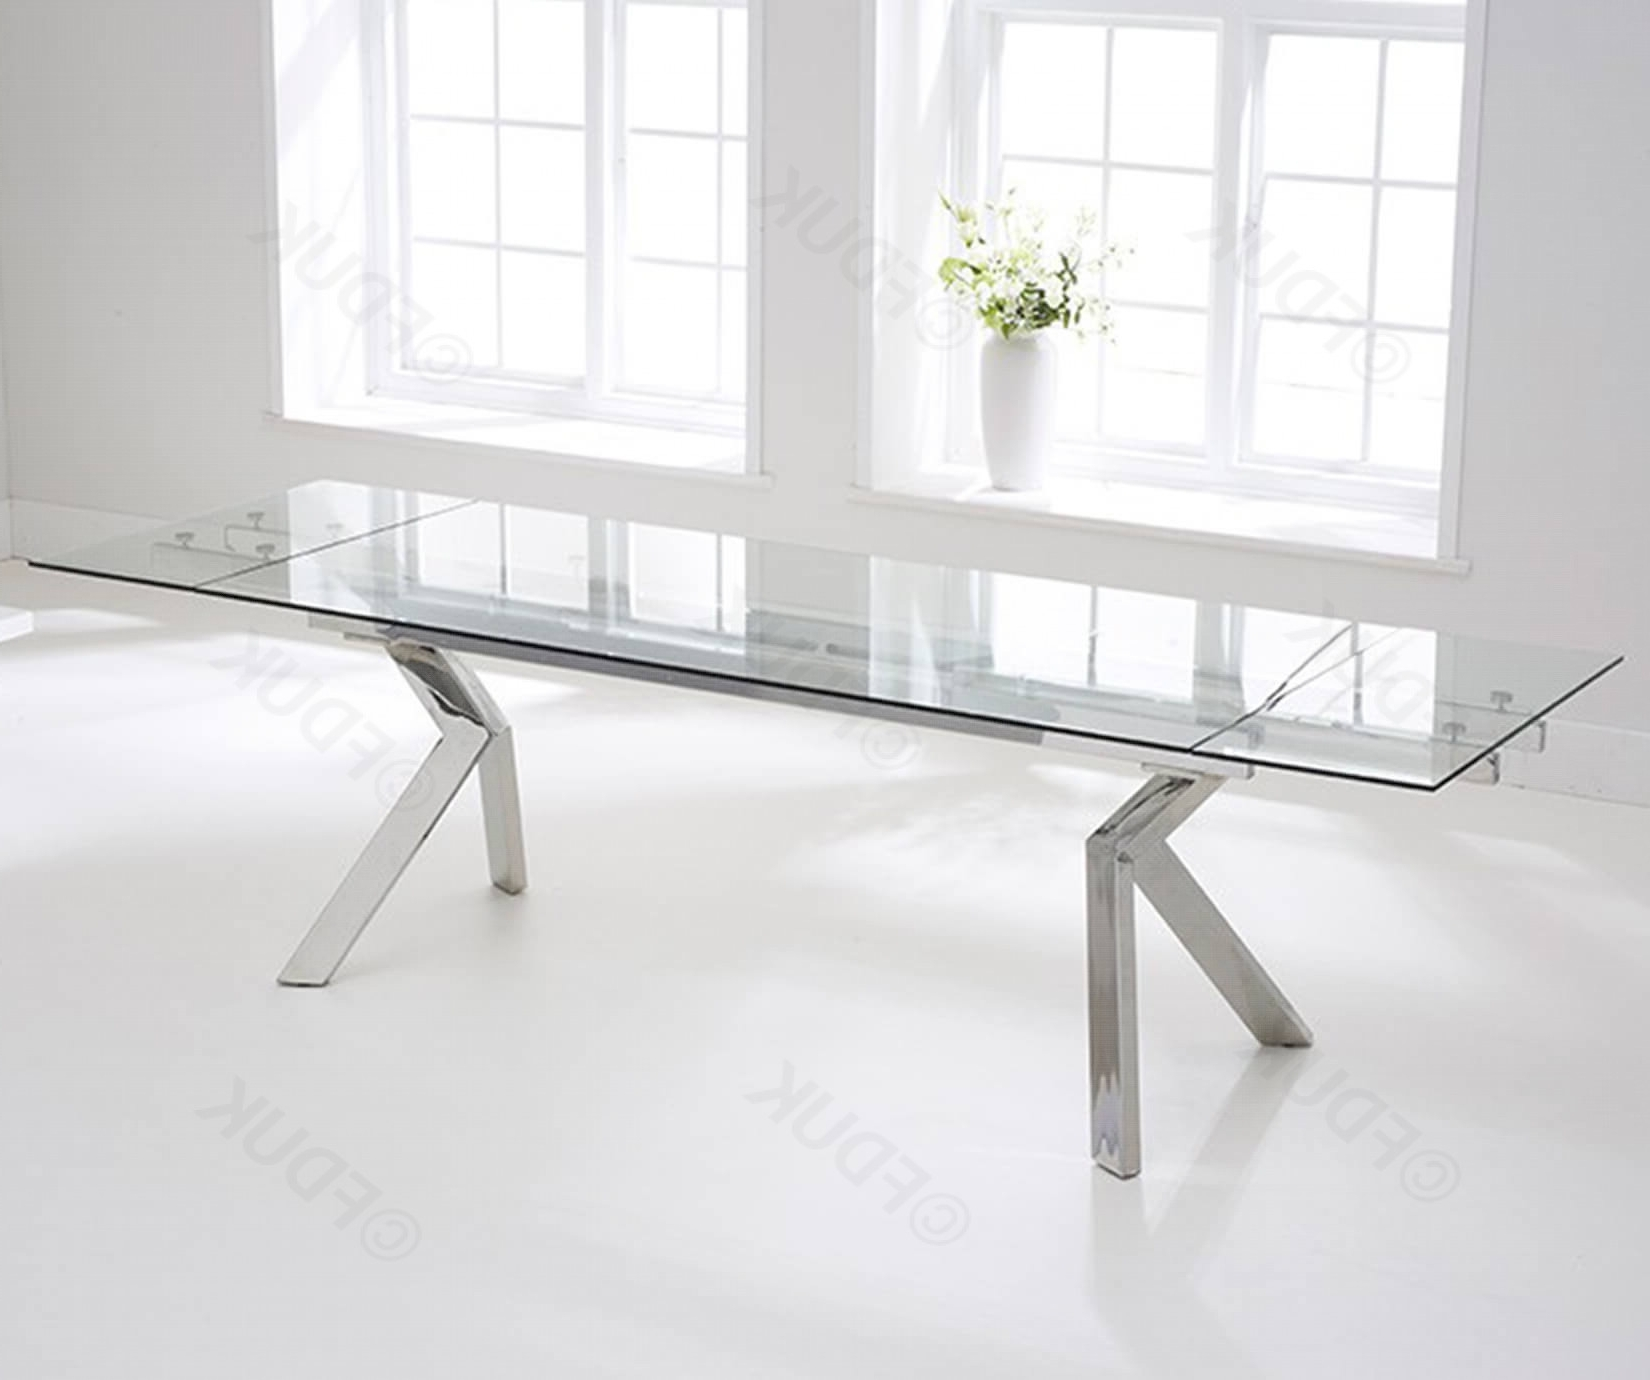 Most Popular Mark Harris Palazzo Glass Extending Dining Table Only Fduk Best Price  Guarantee We Will Beat Our Competitors Price! Give Our Sales Team A Call On  0116 Pertaining To Glass Extending Dining Tables (View 18 of 25)